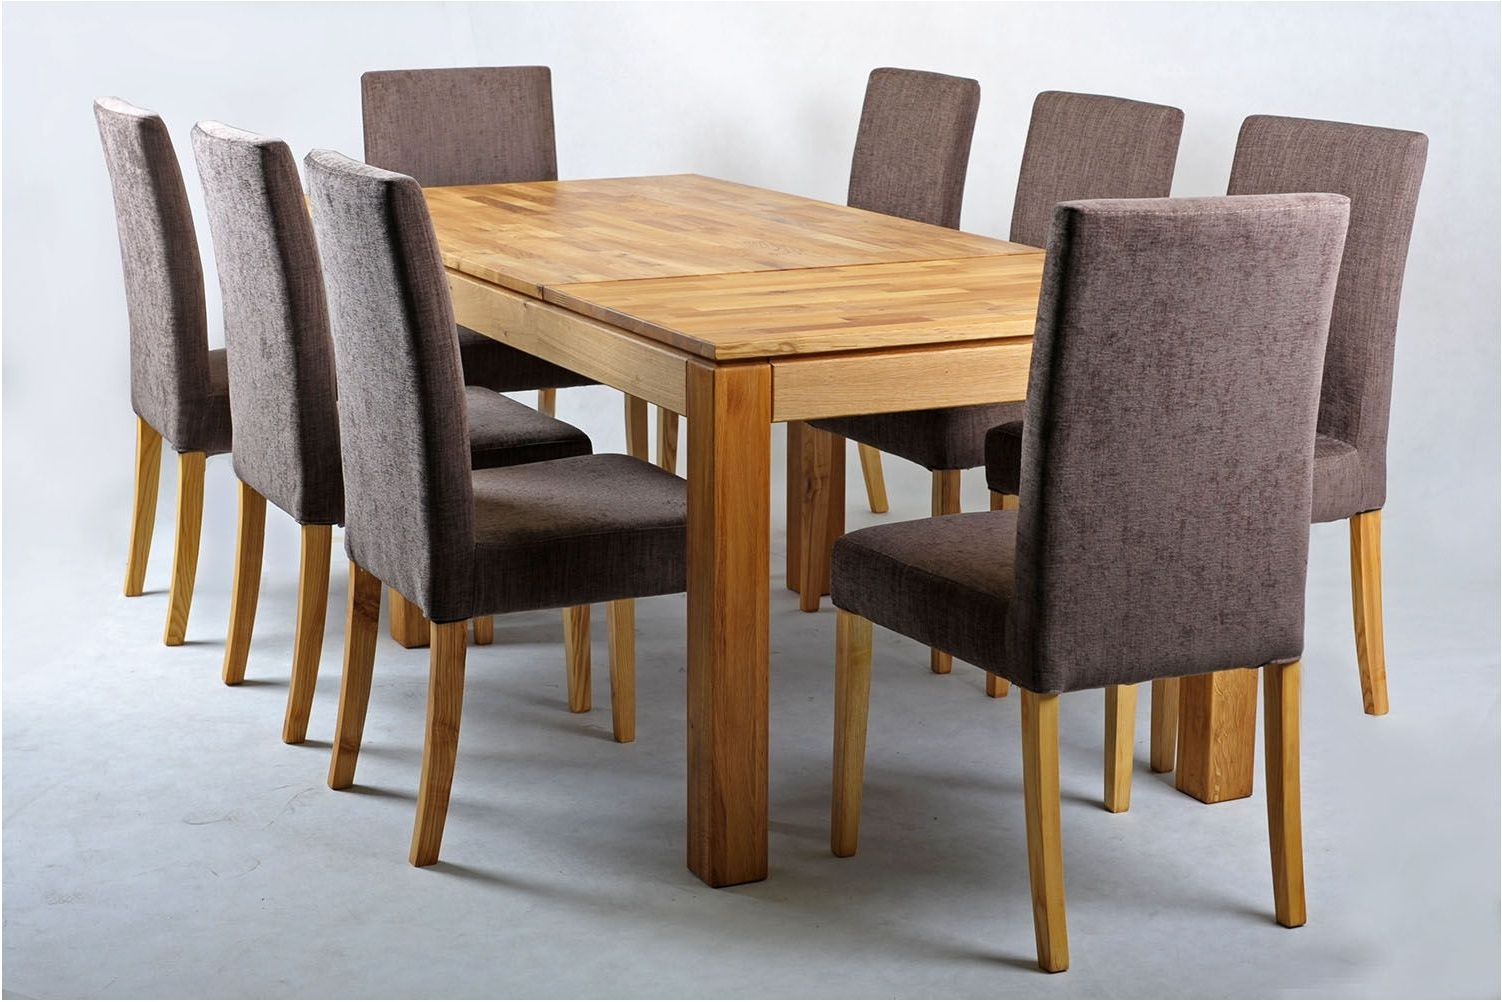 Spectacular Solid Oak Extending Dining Table And Chairs Set Home Intended For Well Known Extending Dining Room Tables And Chairs (View 15 of 25)